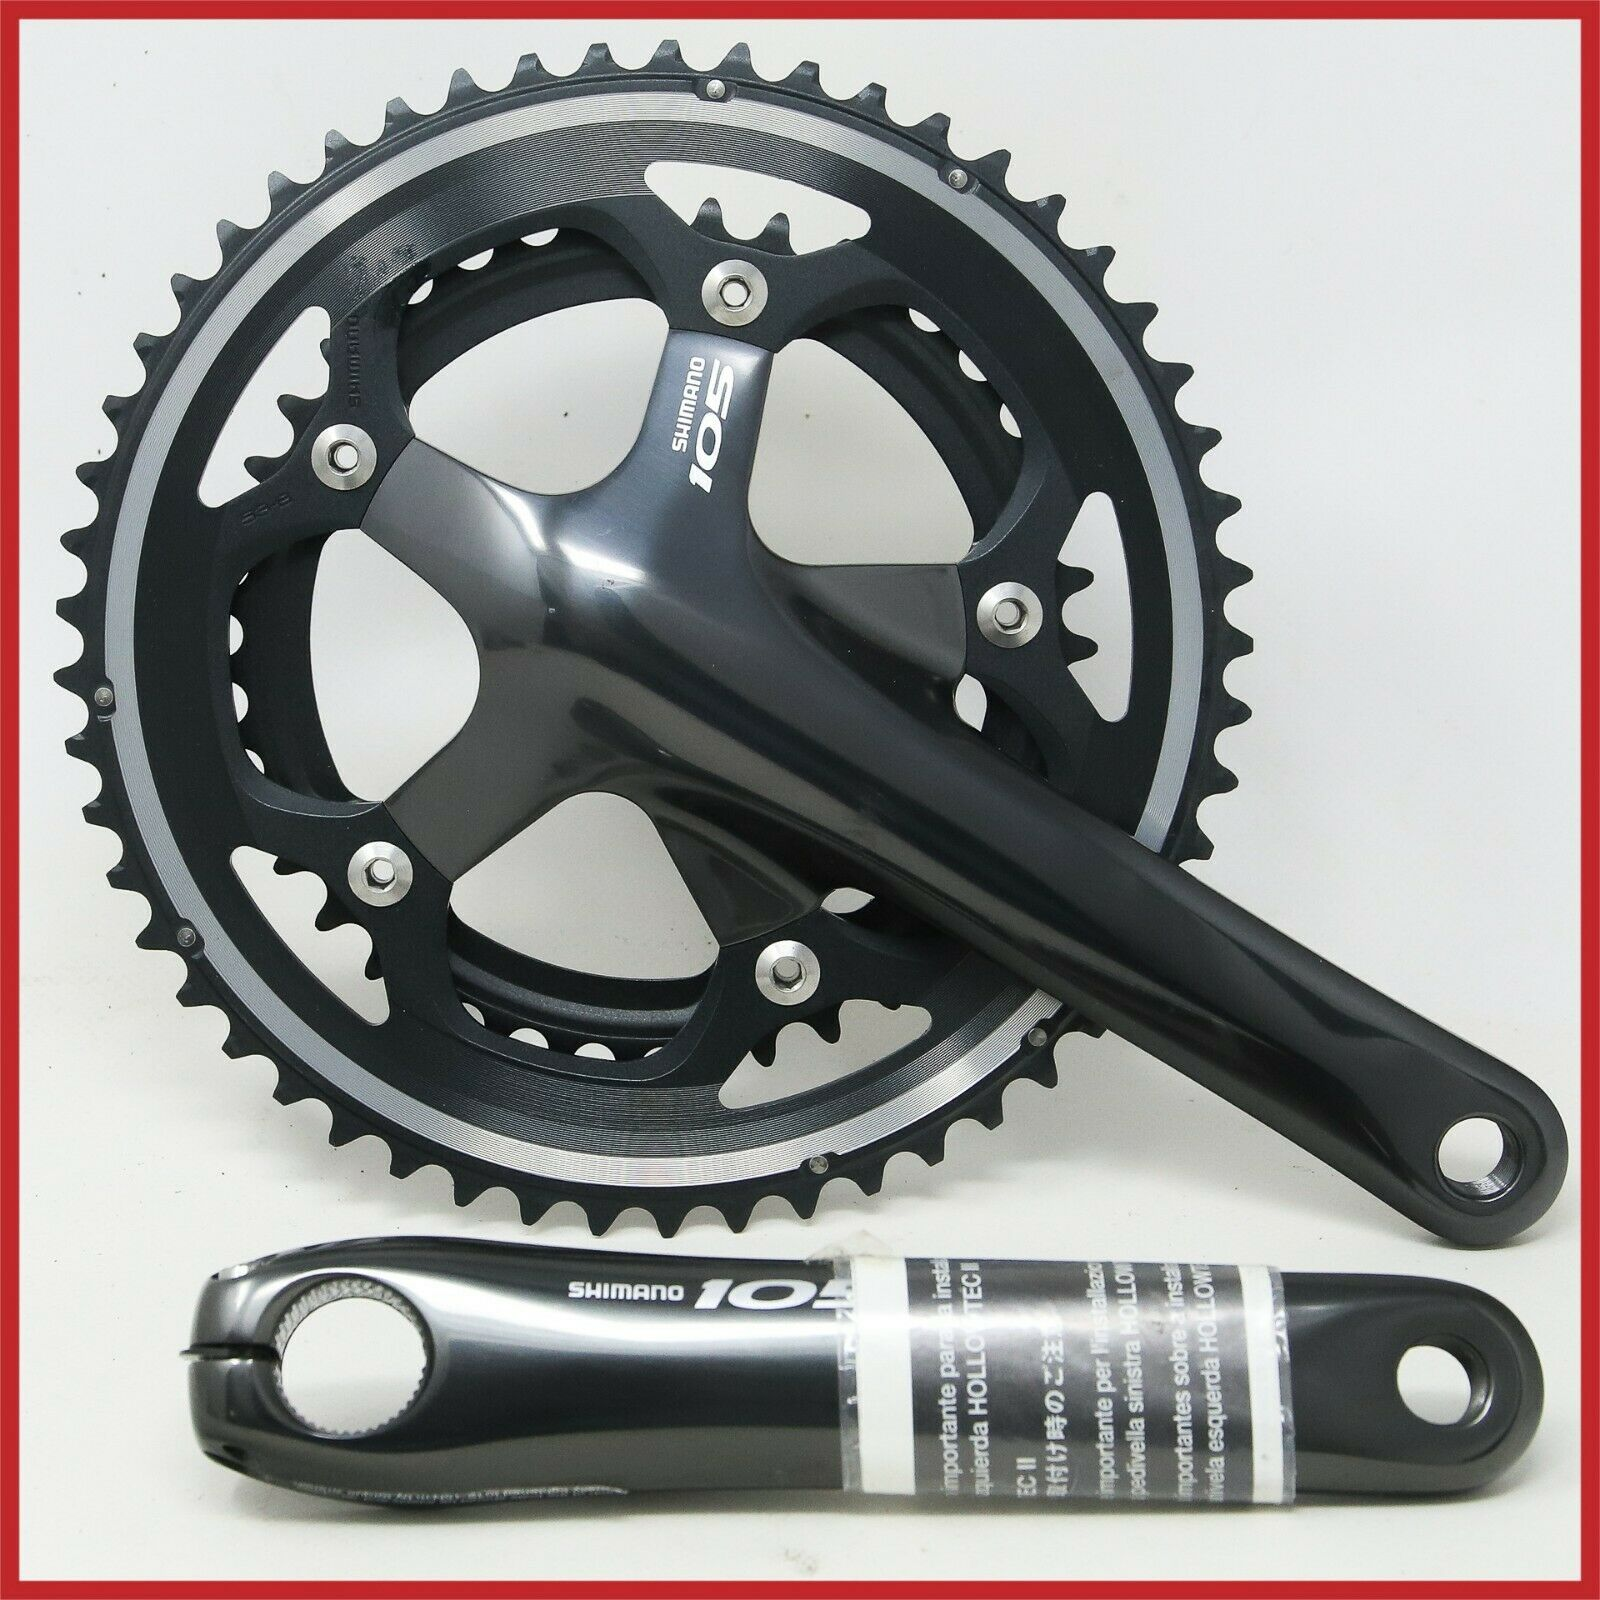 NOS SHIMANO 105 FC-5600 10S SPEED CRANKSET 175mm HOLLOWTECH II 53-39T ROAD BIKE